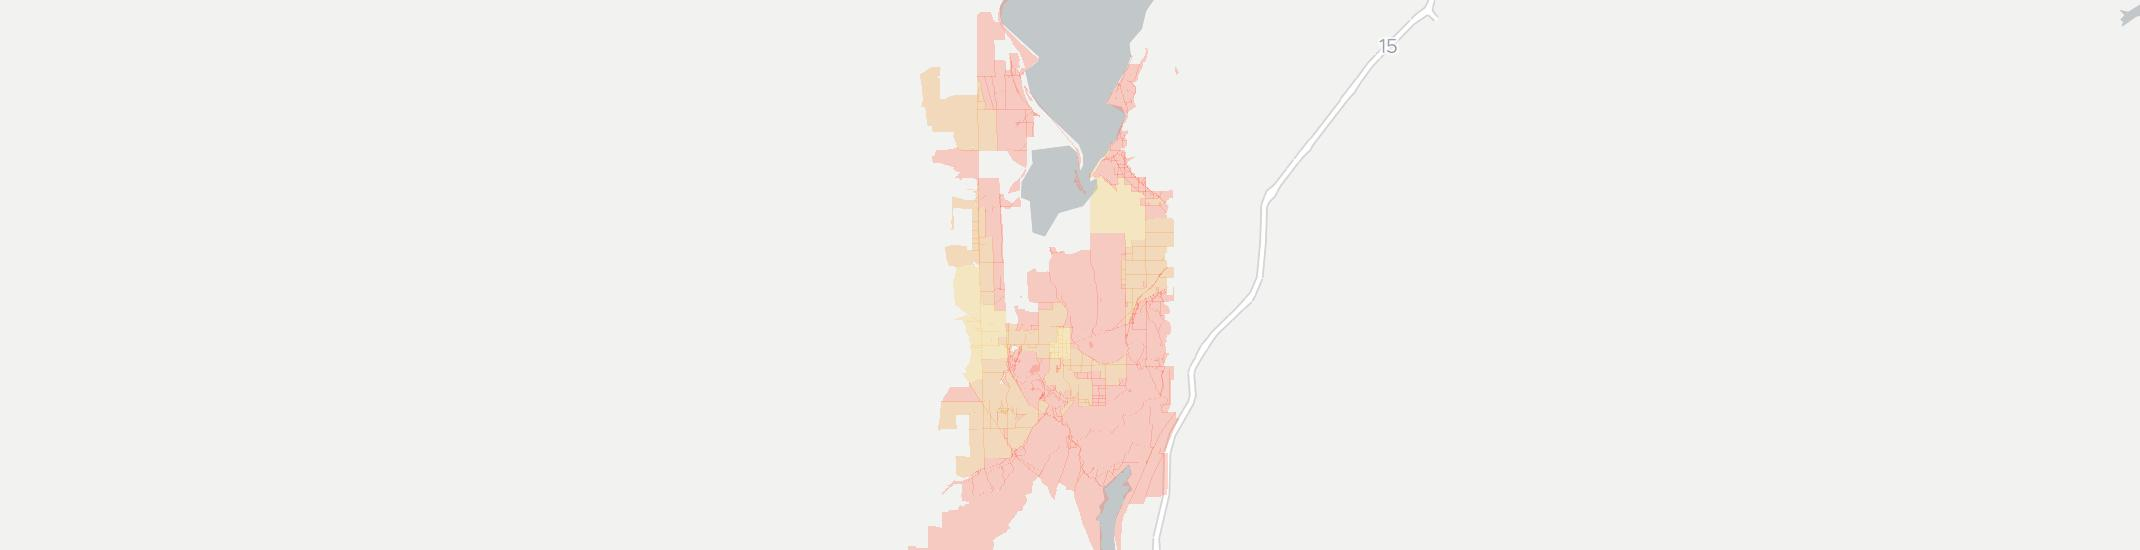 Goshen Internet Competition Map. Click for interactive map.